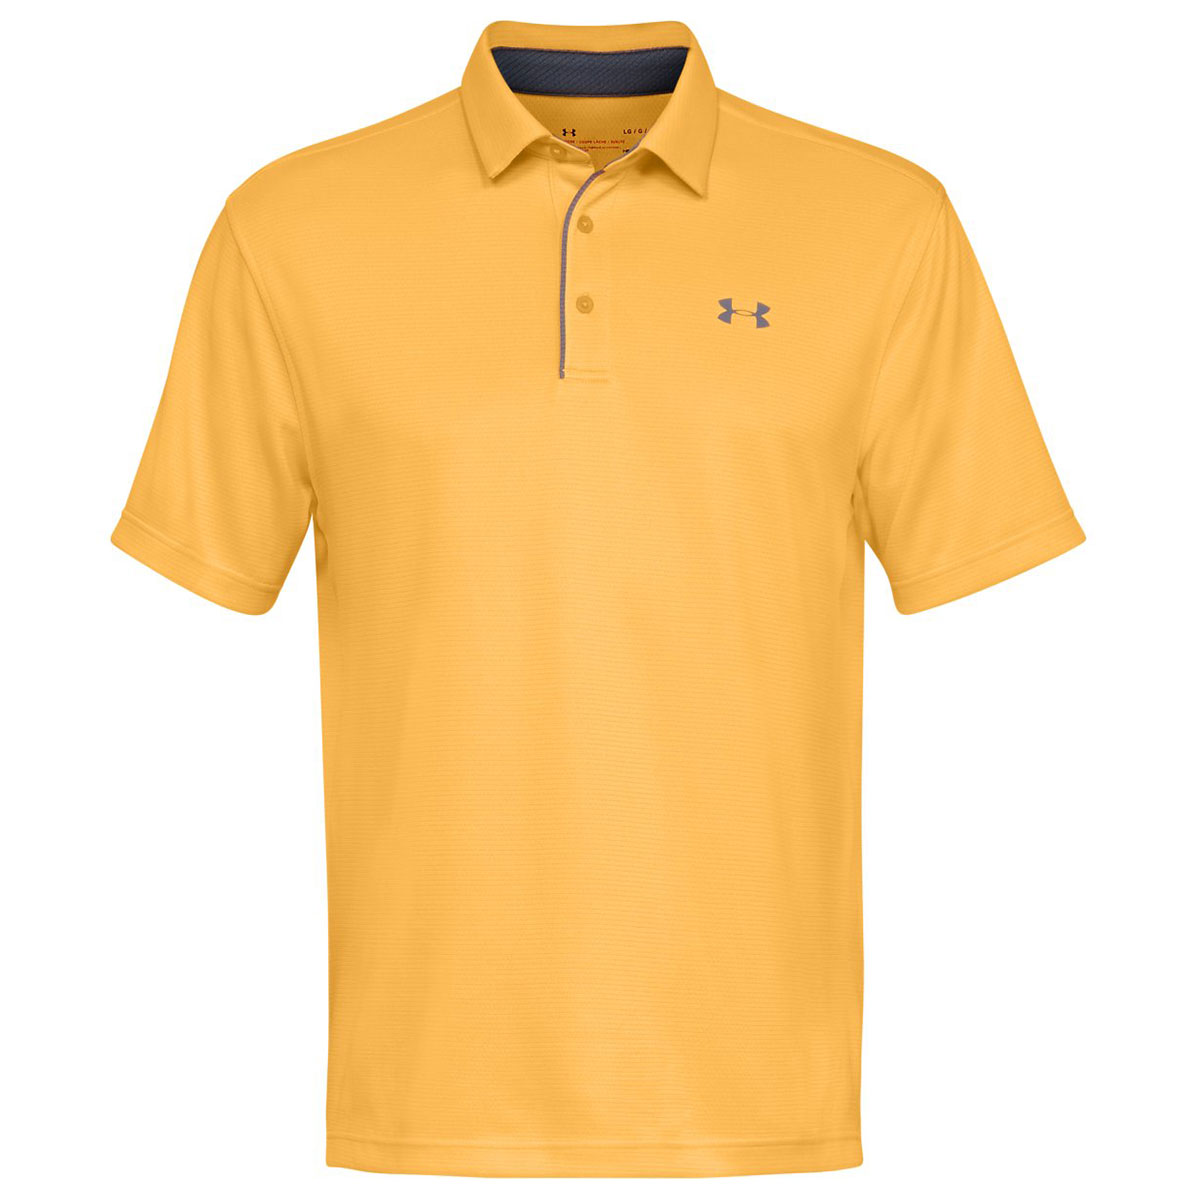 Under-Armour-Mens-Golf-Tech-Wicking-Textured-Soft-Light-Polo-Shirt thumbnail 46